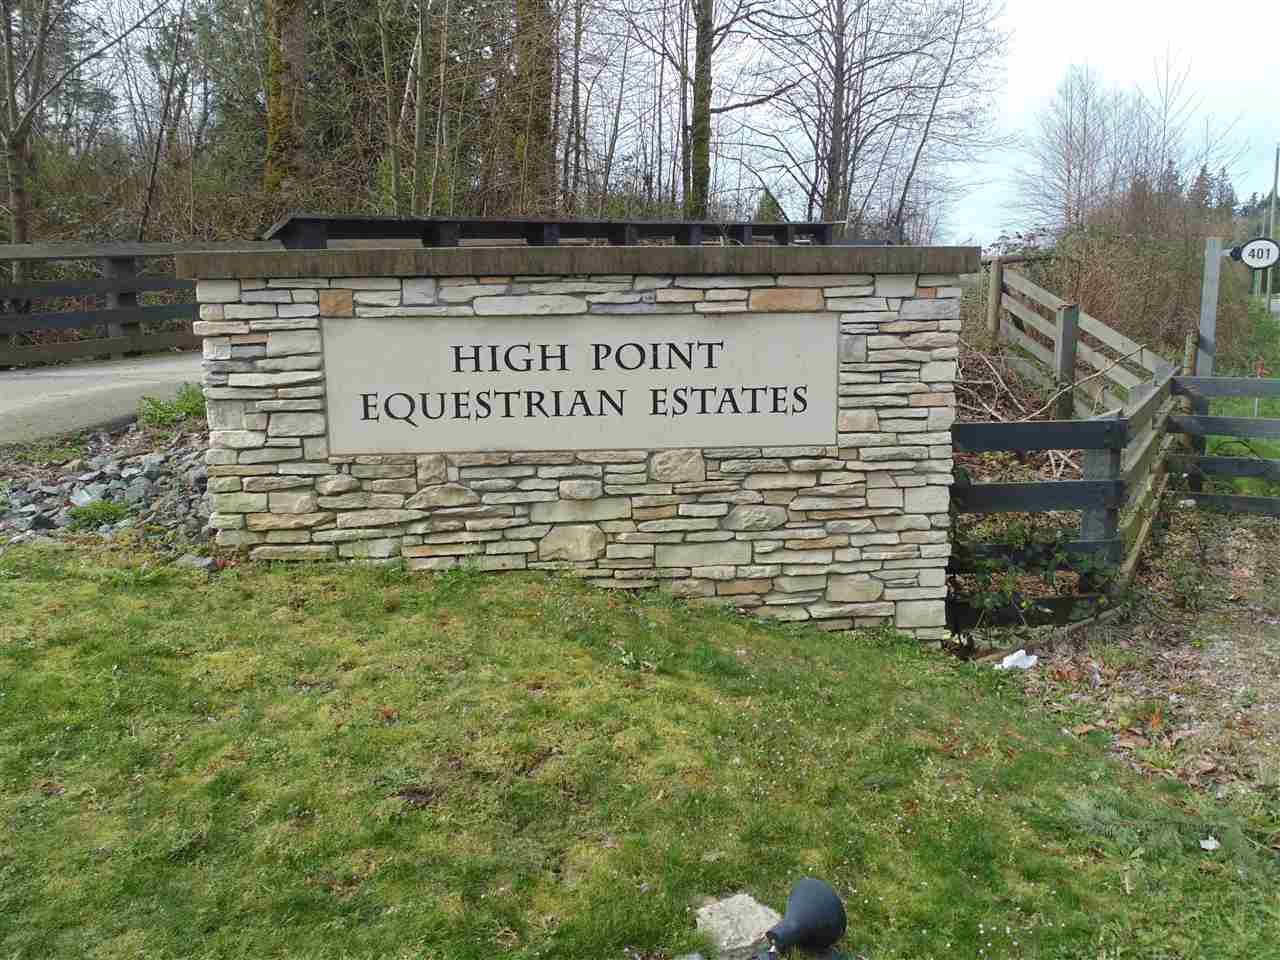 The wait is over, build your dream home in beautiful High Point Estates in South Langley. Your future home will boast breathtaking unobstructed views of the North Shore Mountains and city lights. This 26,573 Sq ft lot is well situated in High Point Estates and overlooks most of the subdivision located on 258 acres with 85 acers of parkland, 9km of trails, a spring fed lake and forest.